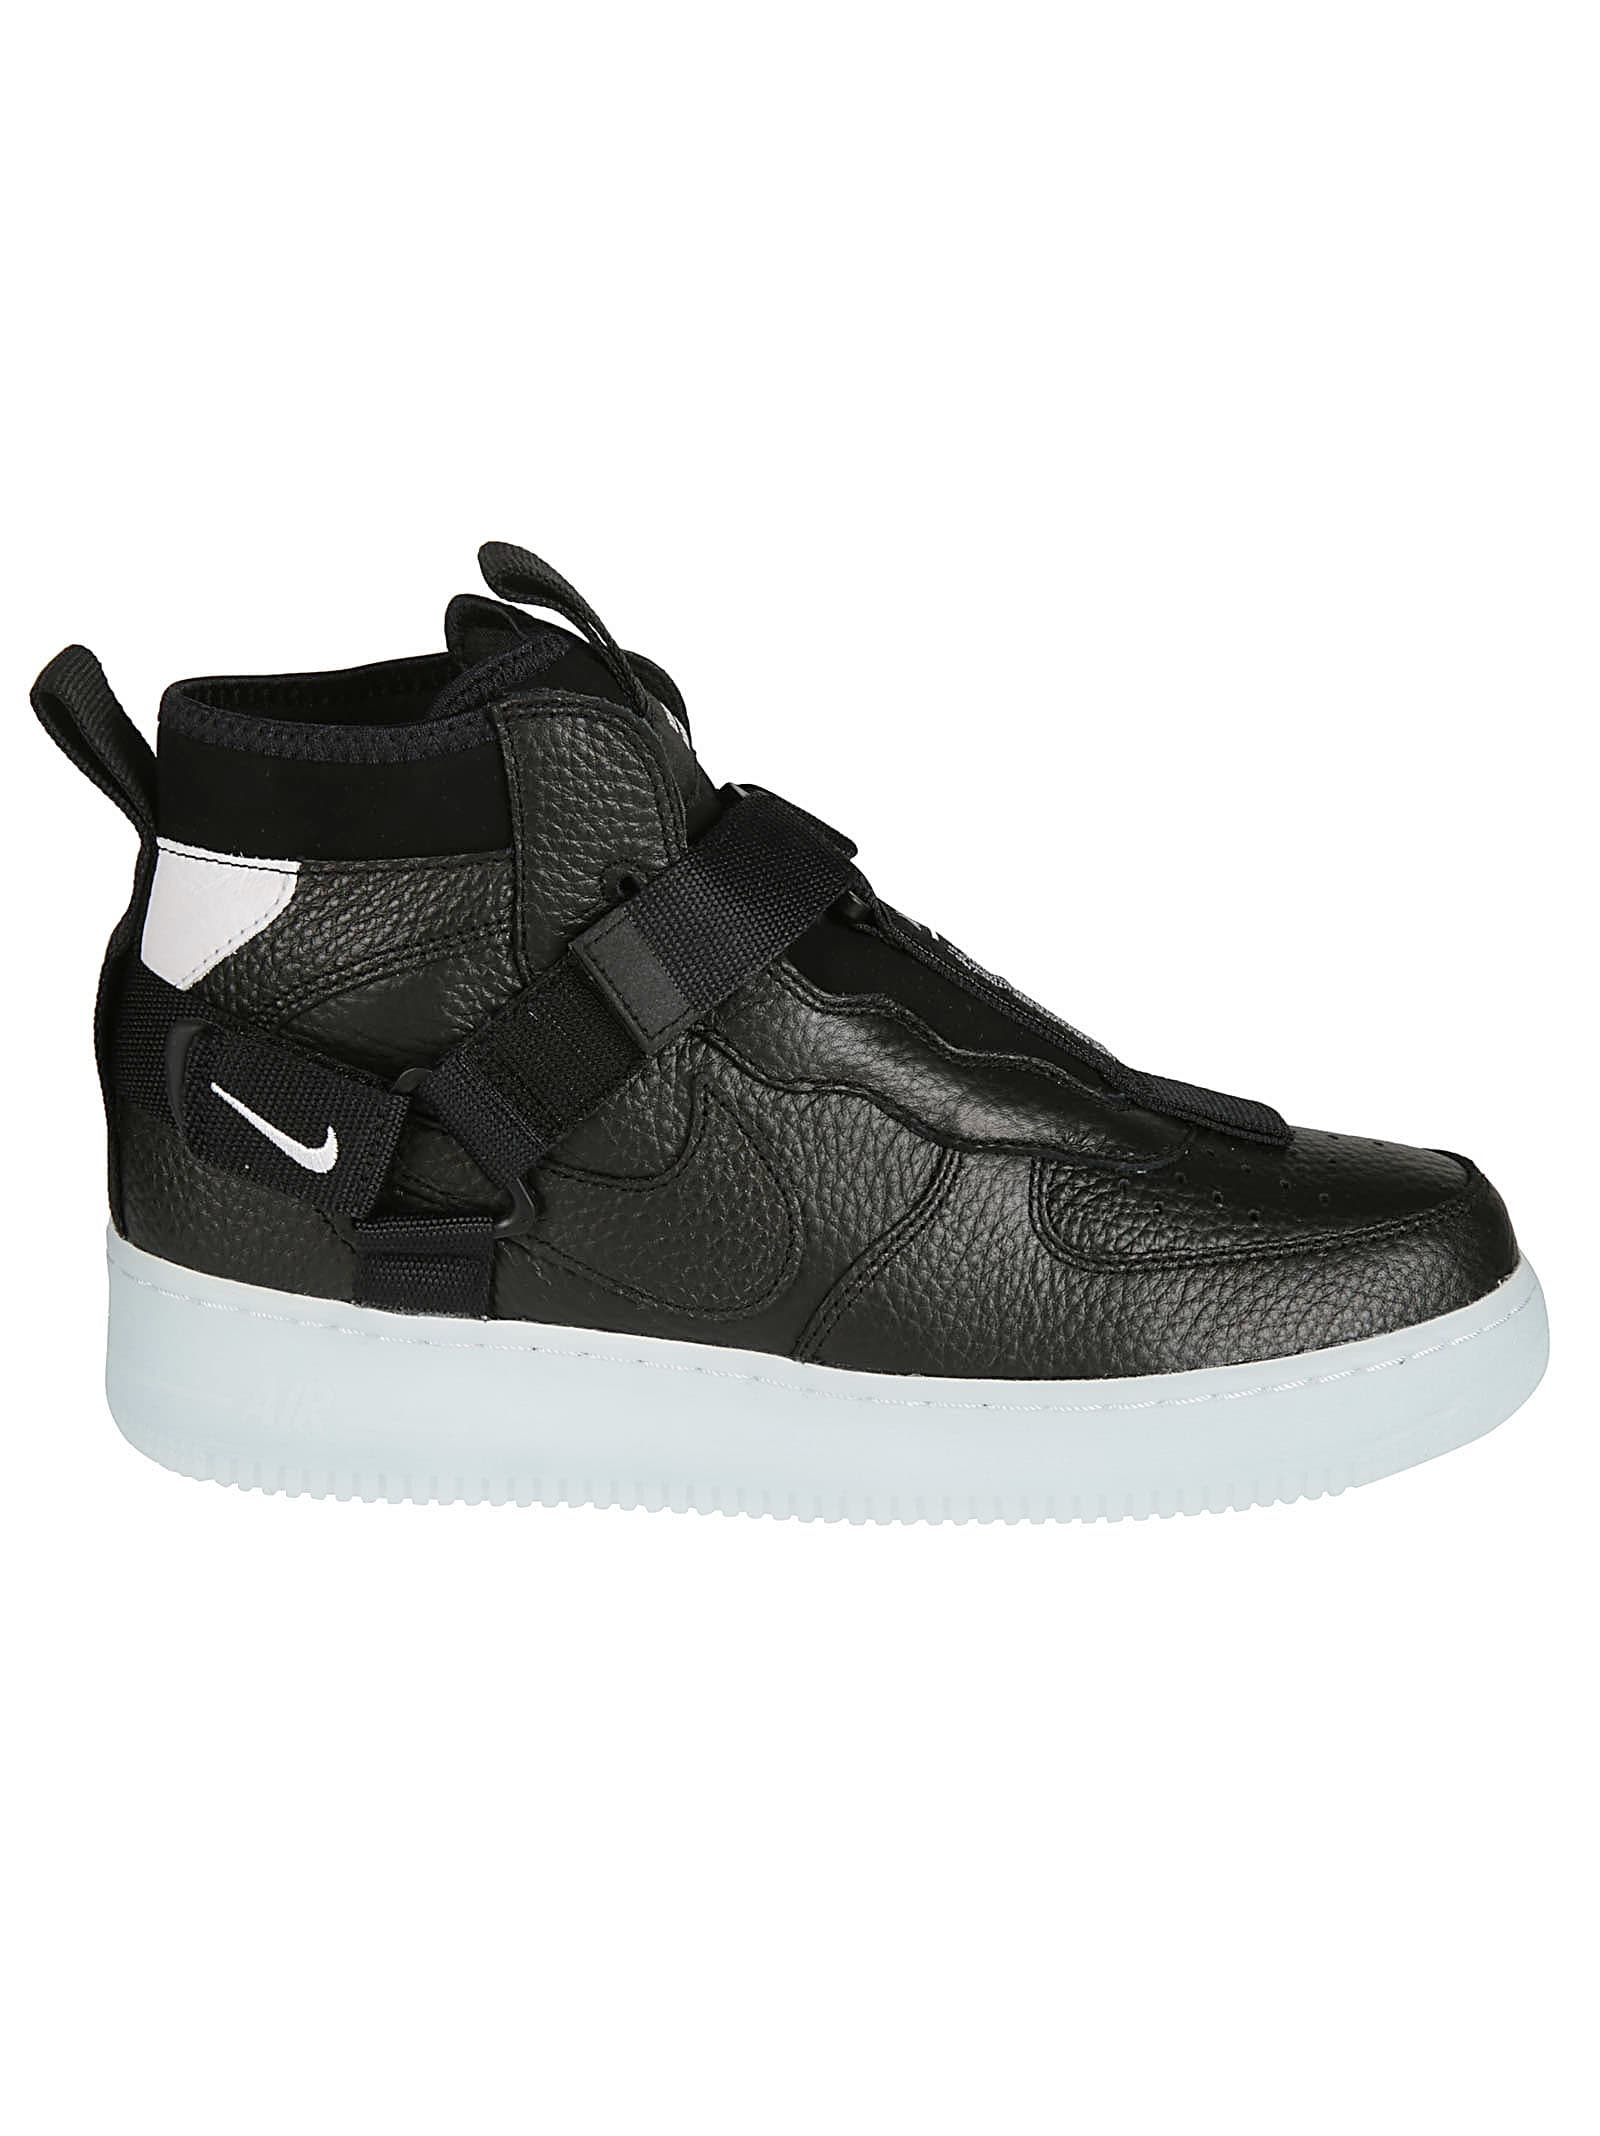 nouveau concept f4dea e0682 Best price on the market at italist | Nike Nike Air Force One Mid Utility  Sneakers